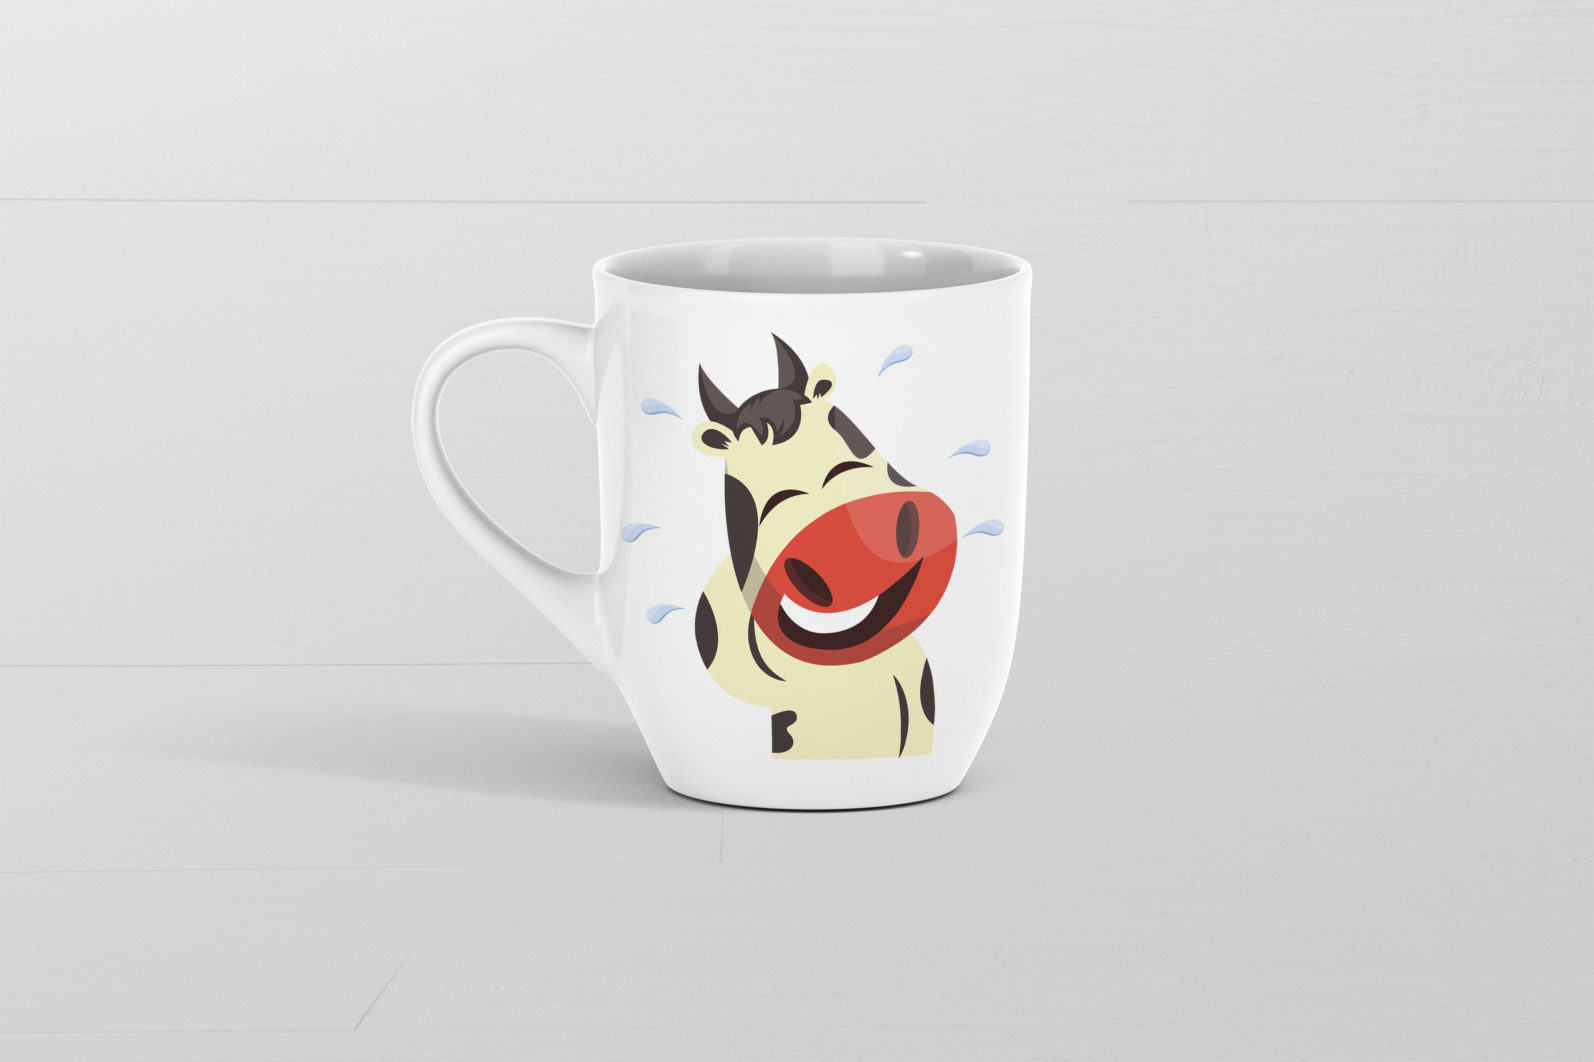 12x Cow Emotion Collection illustration. - 71 Cow MUG SECONDARY scaled -